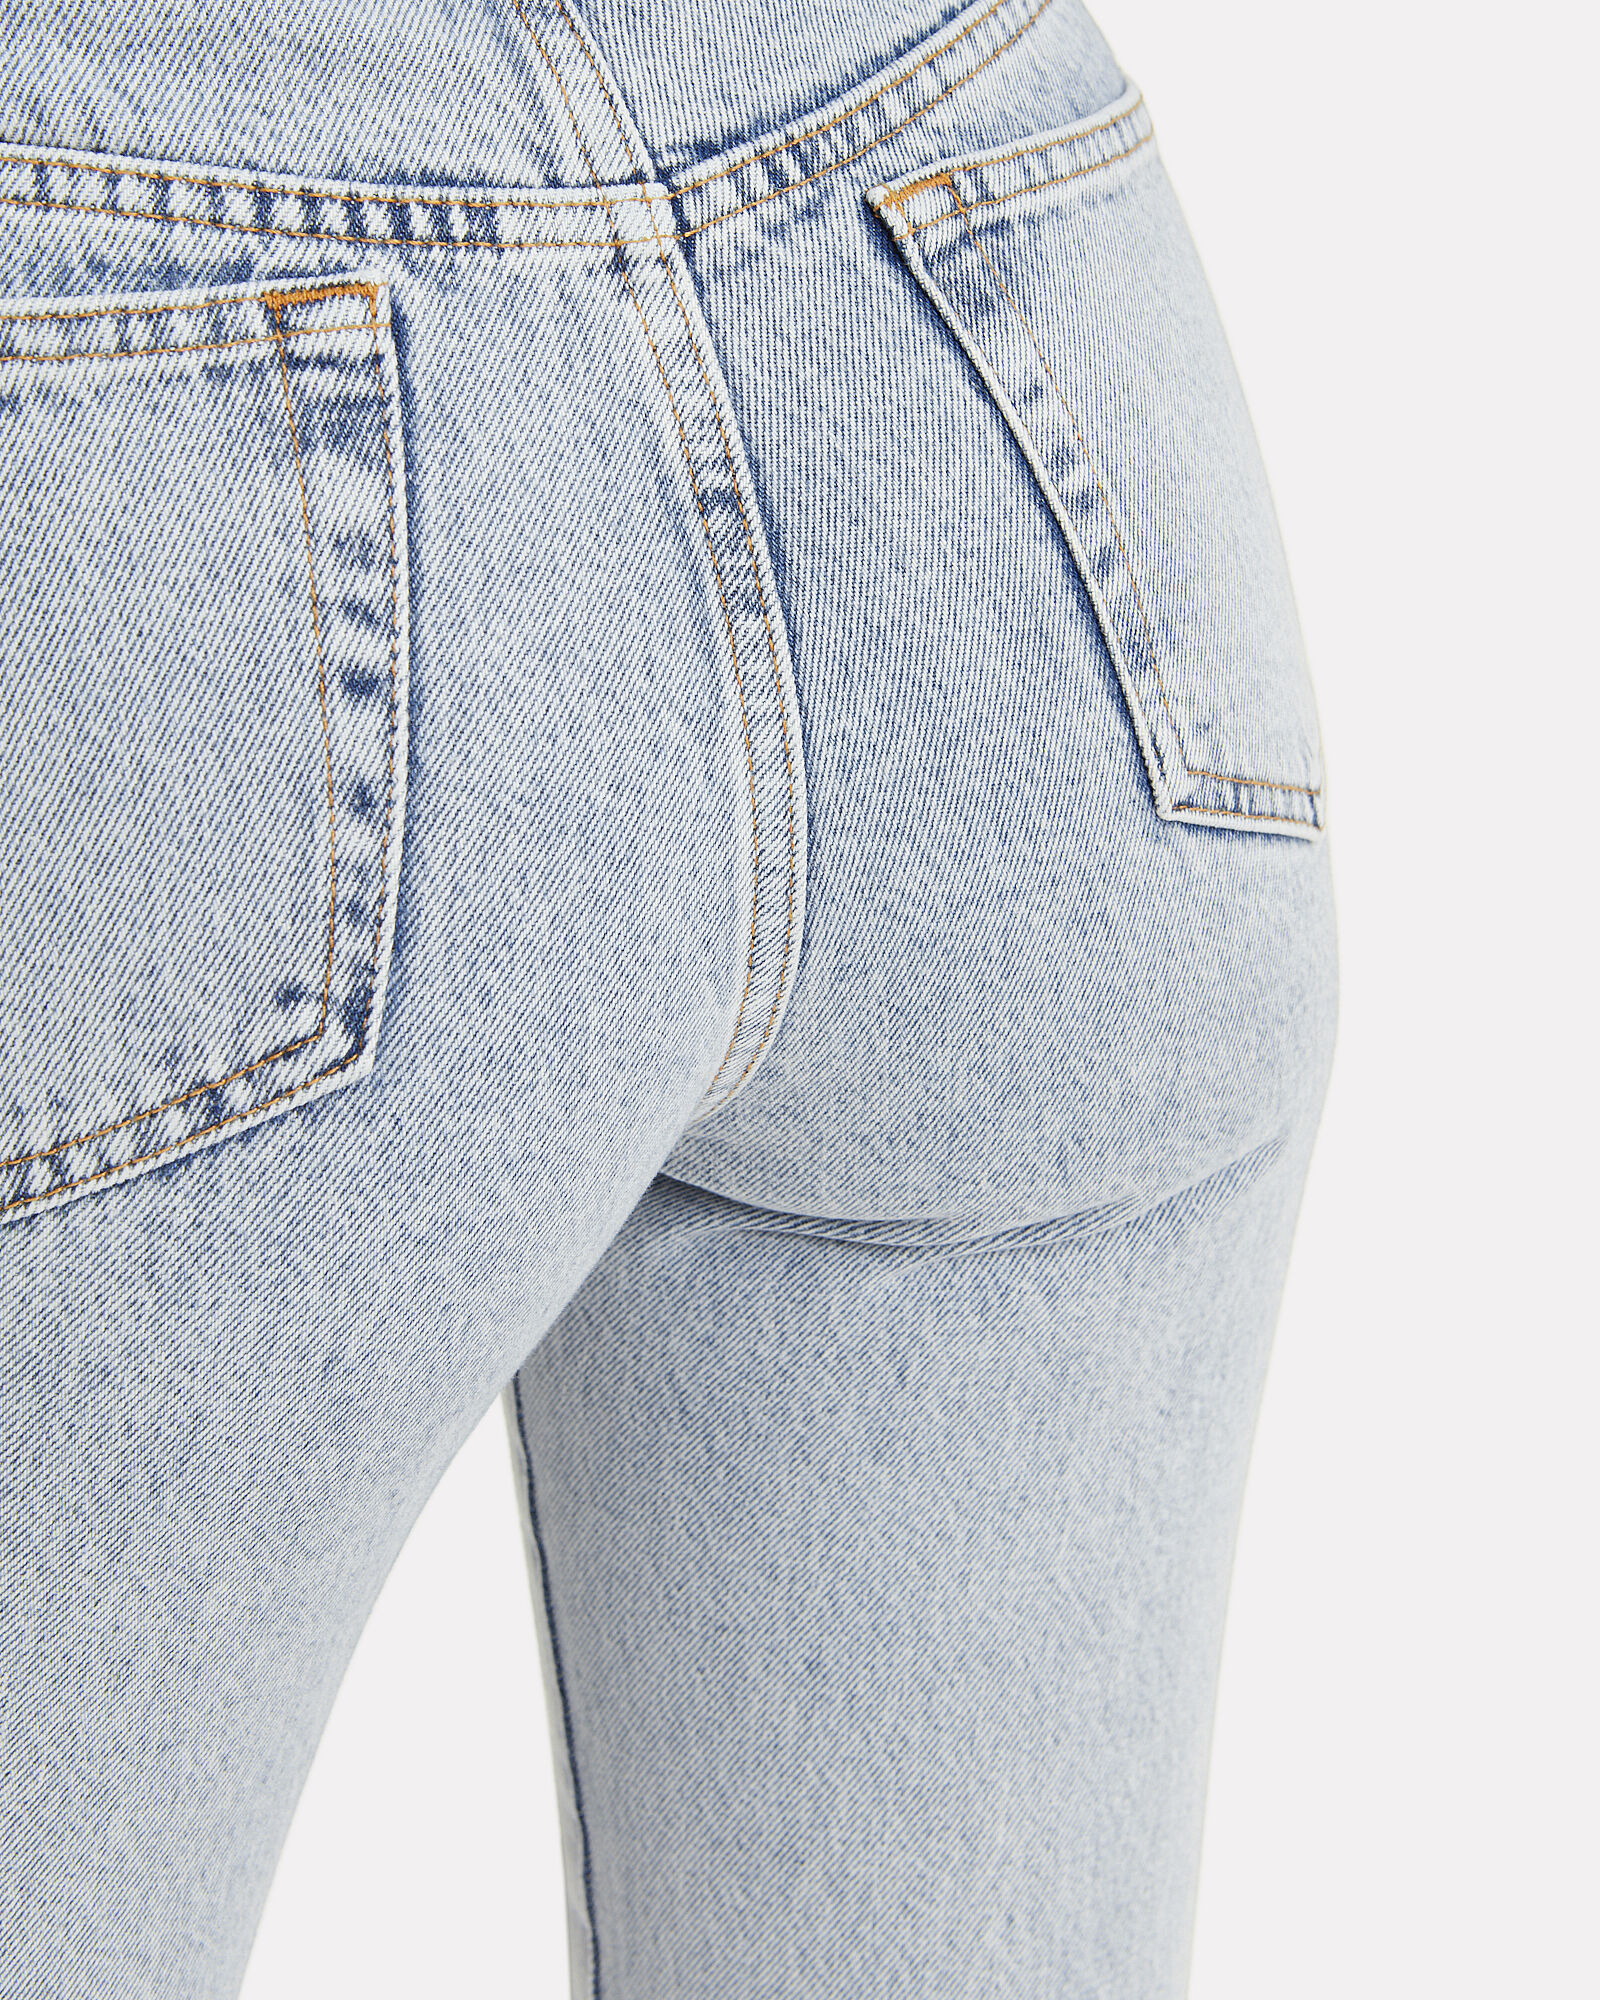 Cali Cropped Acid Wash Jeans, ACID WASH, hi-res